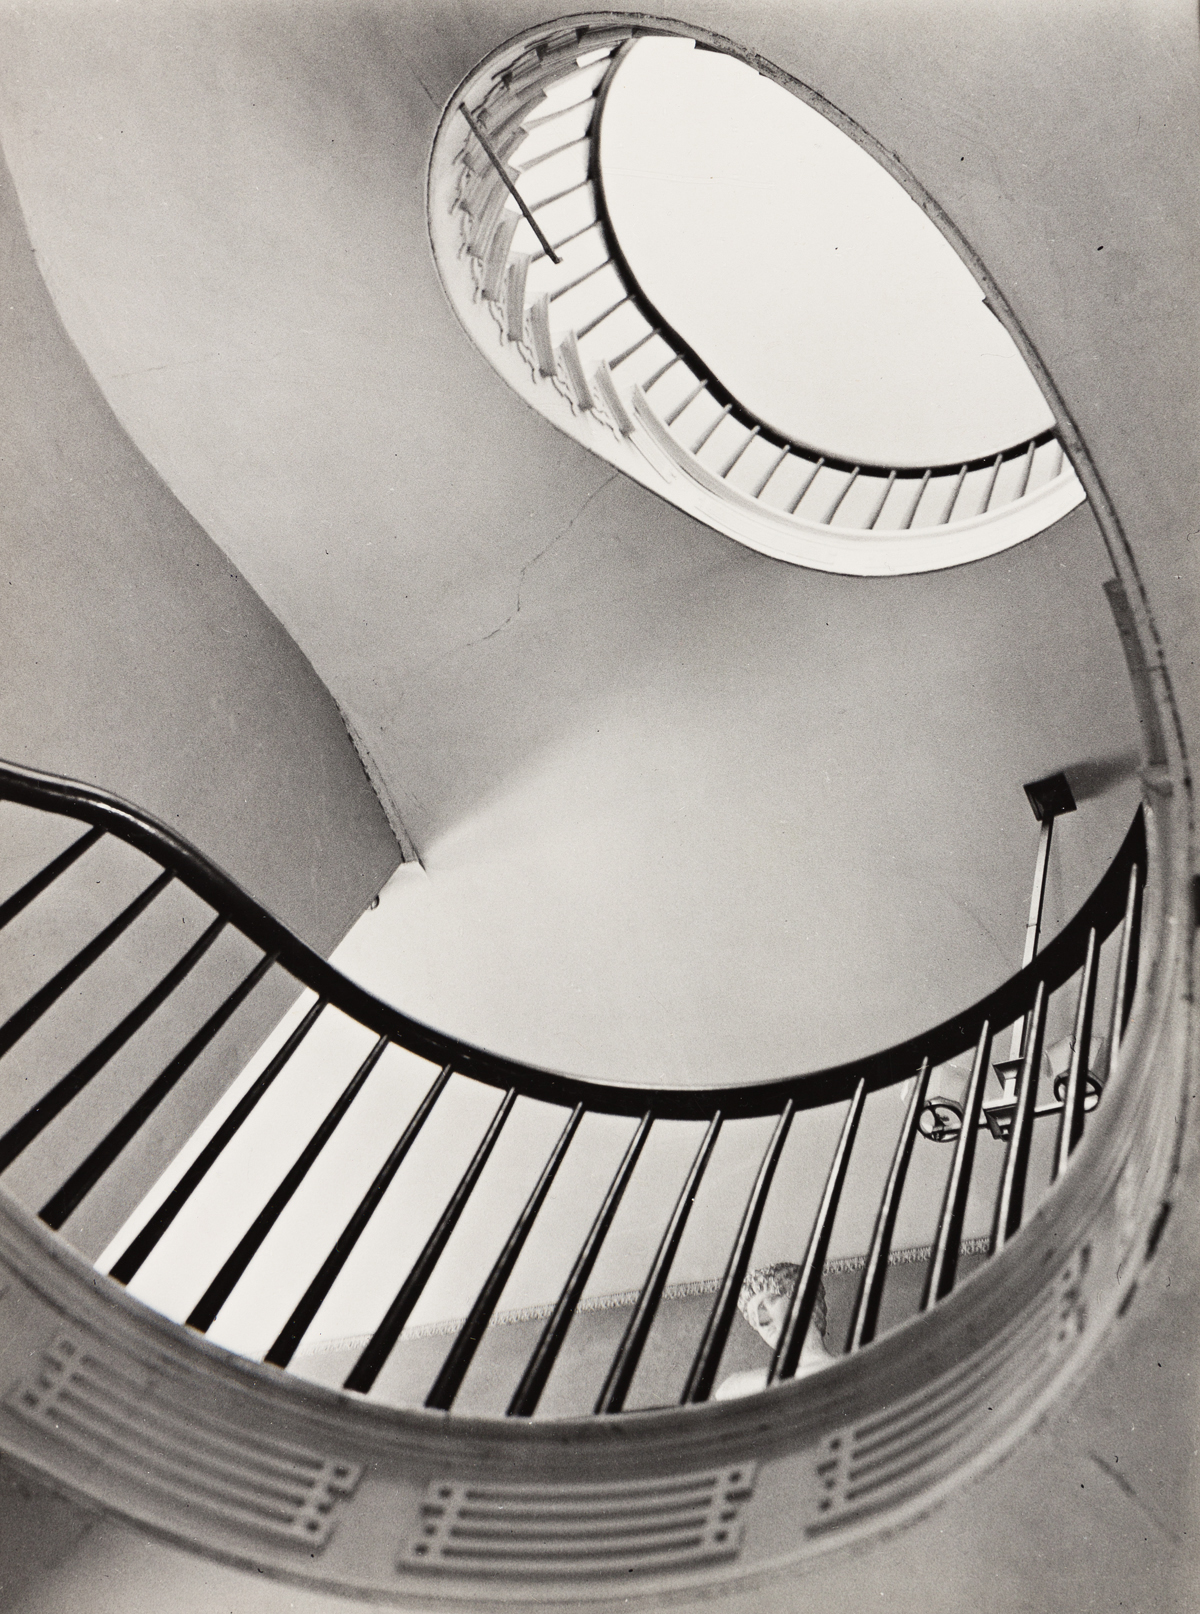 CLARENCE JOHN LAUGHLIN (1905-1985) The Magnificent Spiral.